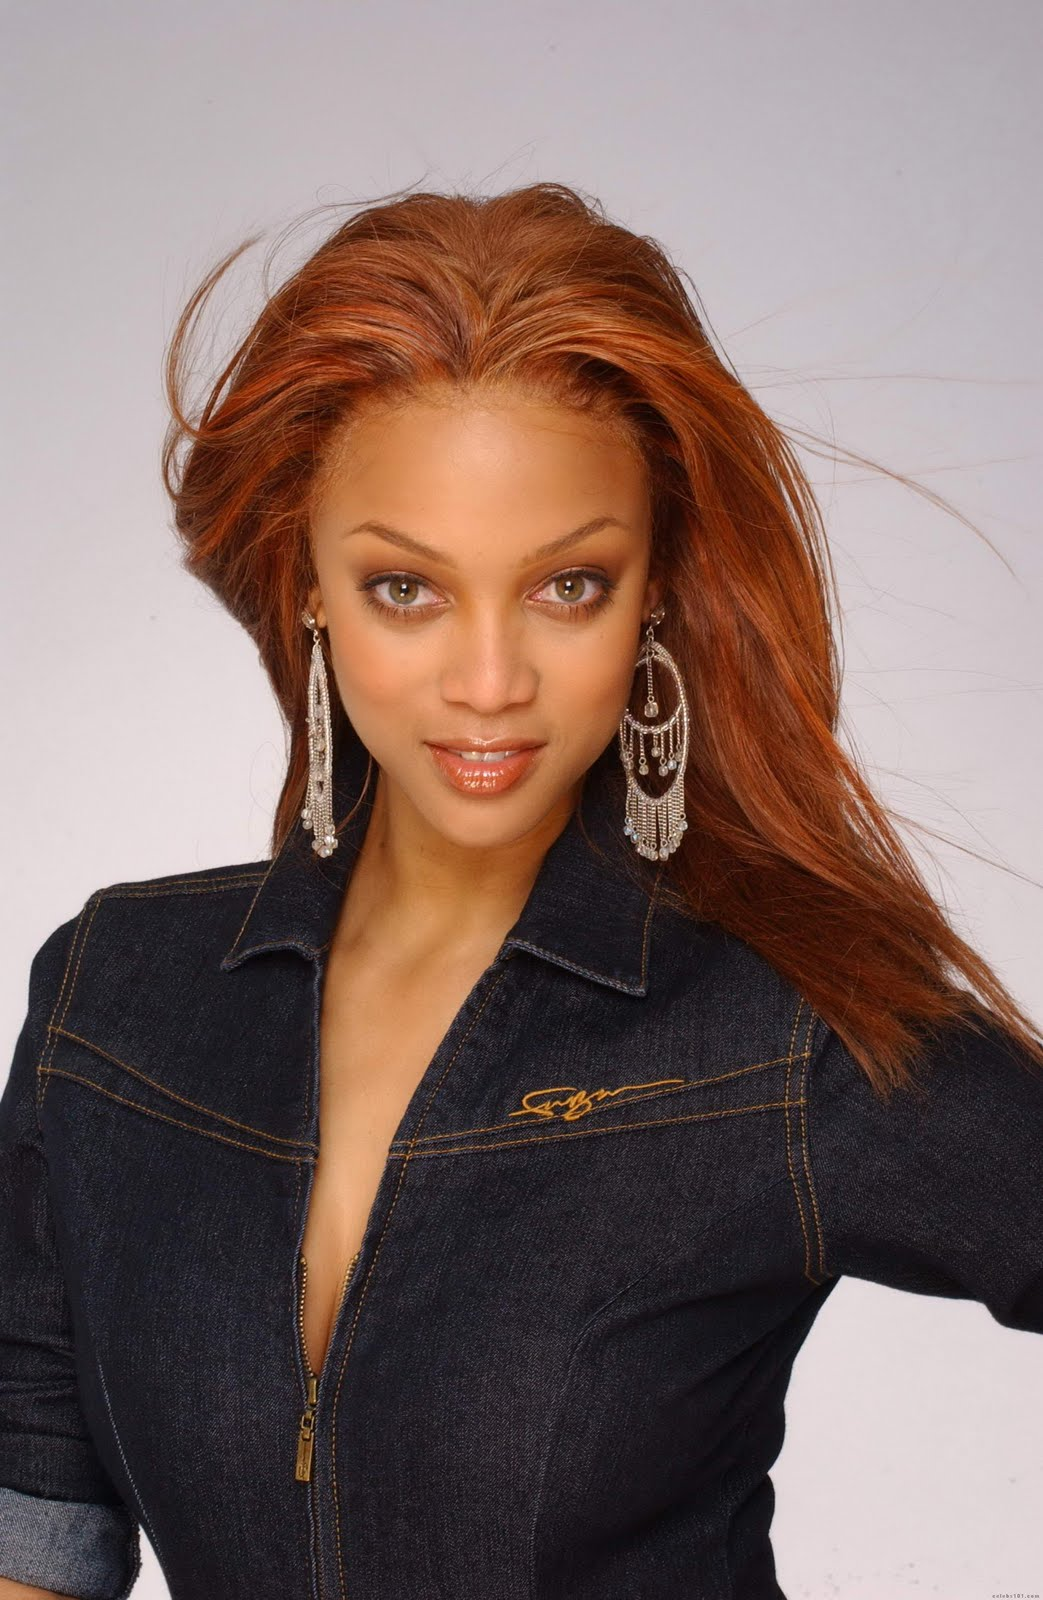 America's Next Top Model season 15 Tyra Banks Host Images